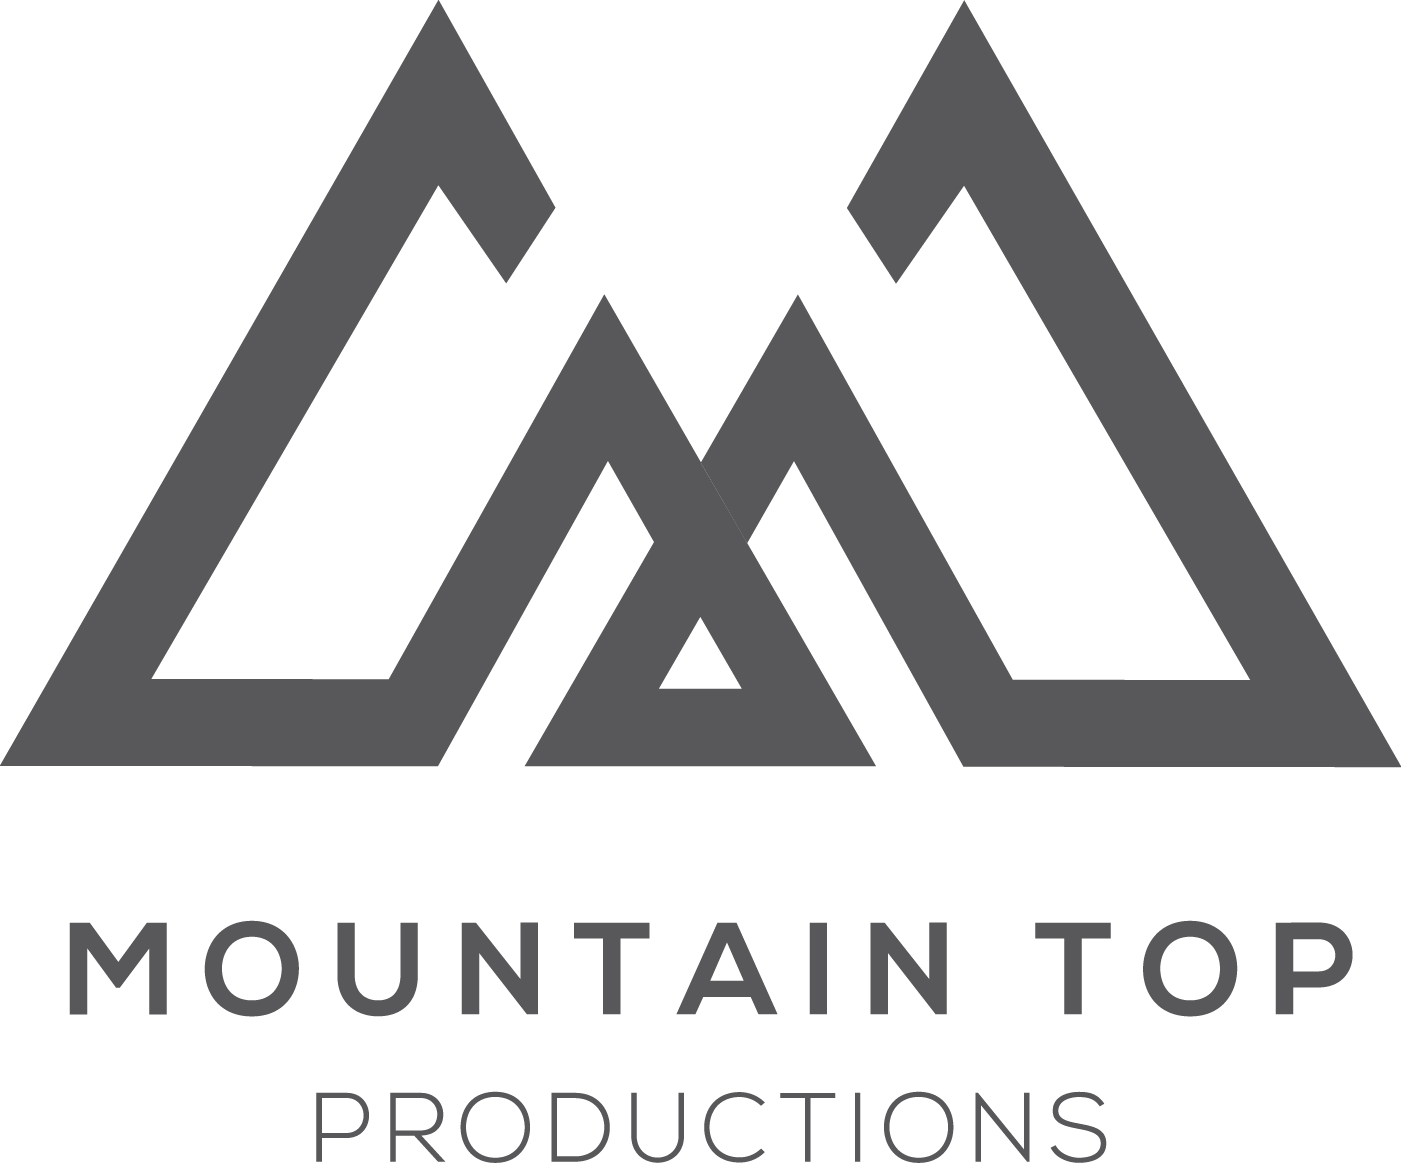 Mountain Top Productions